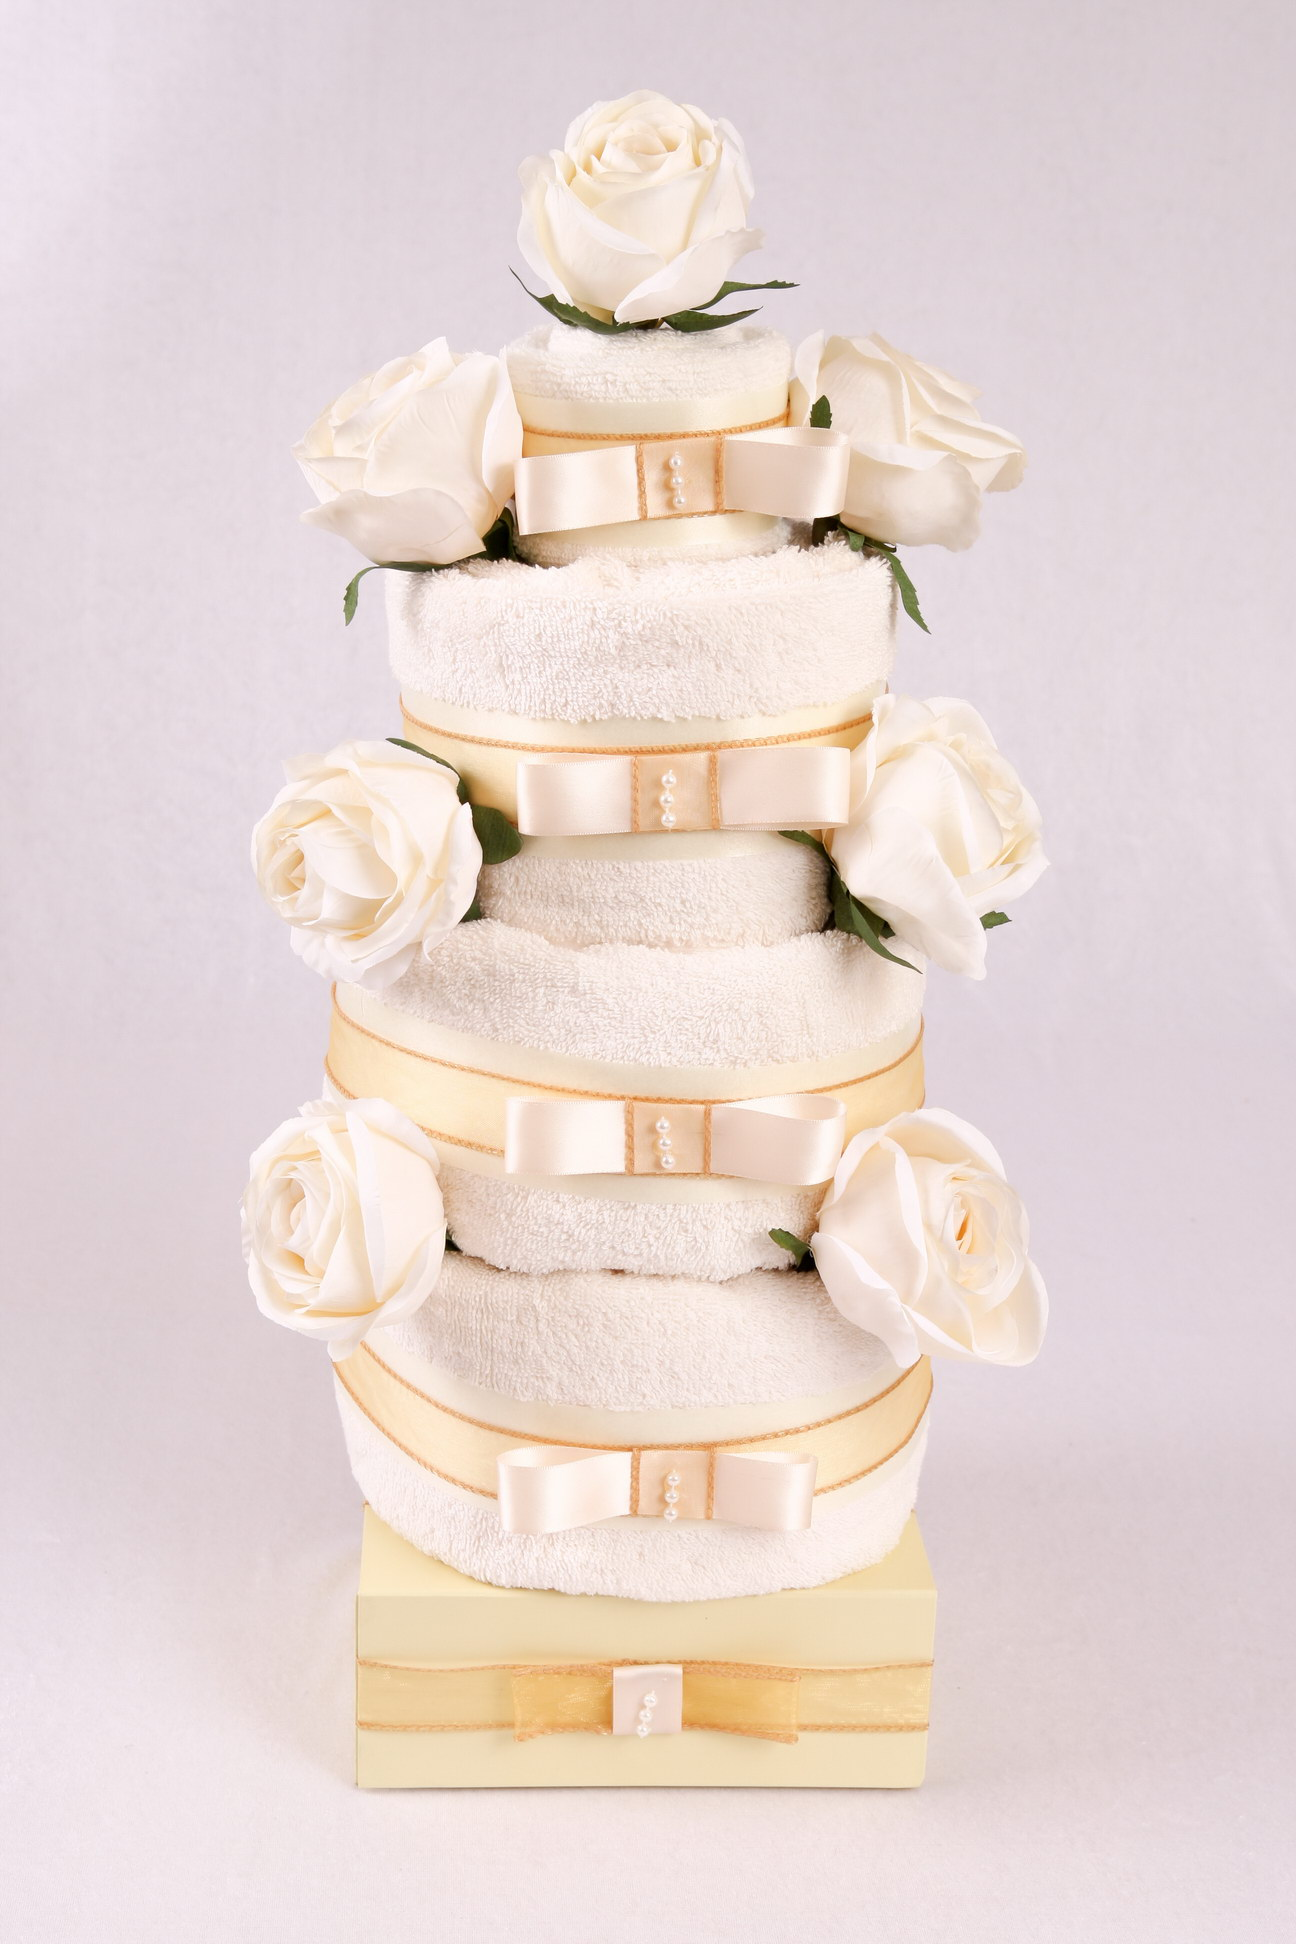 ROSE TOWEL CAKE